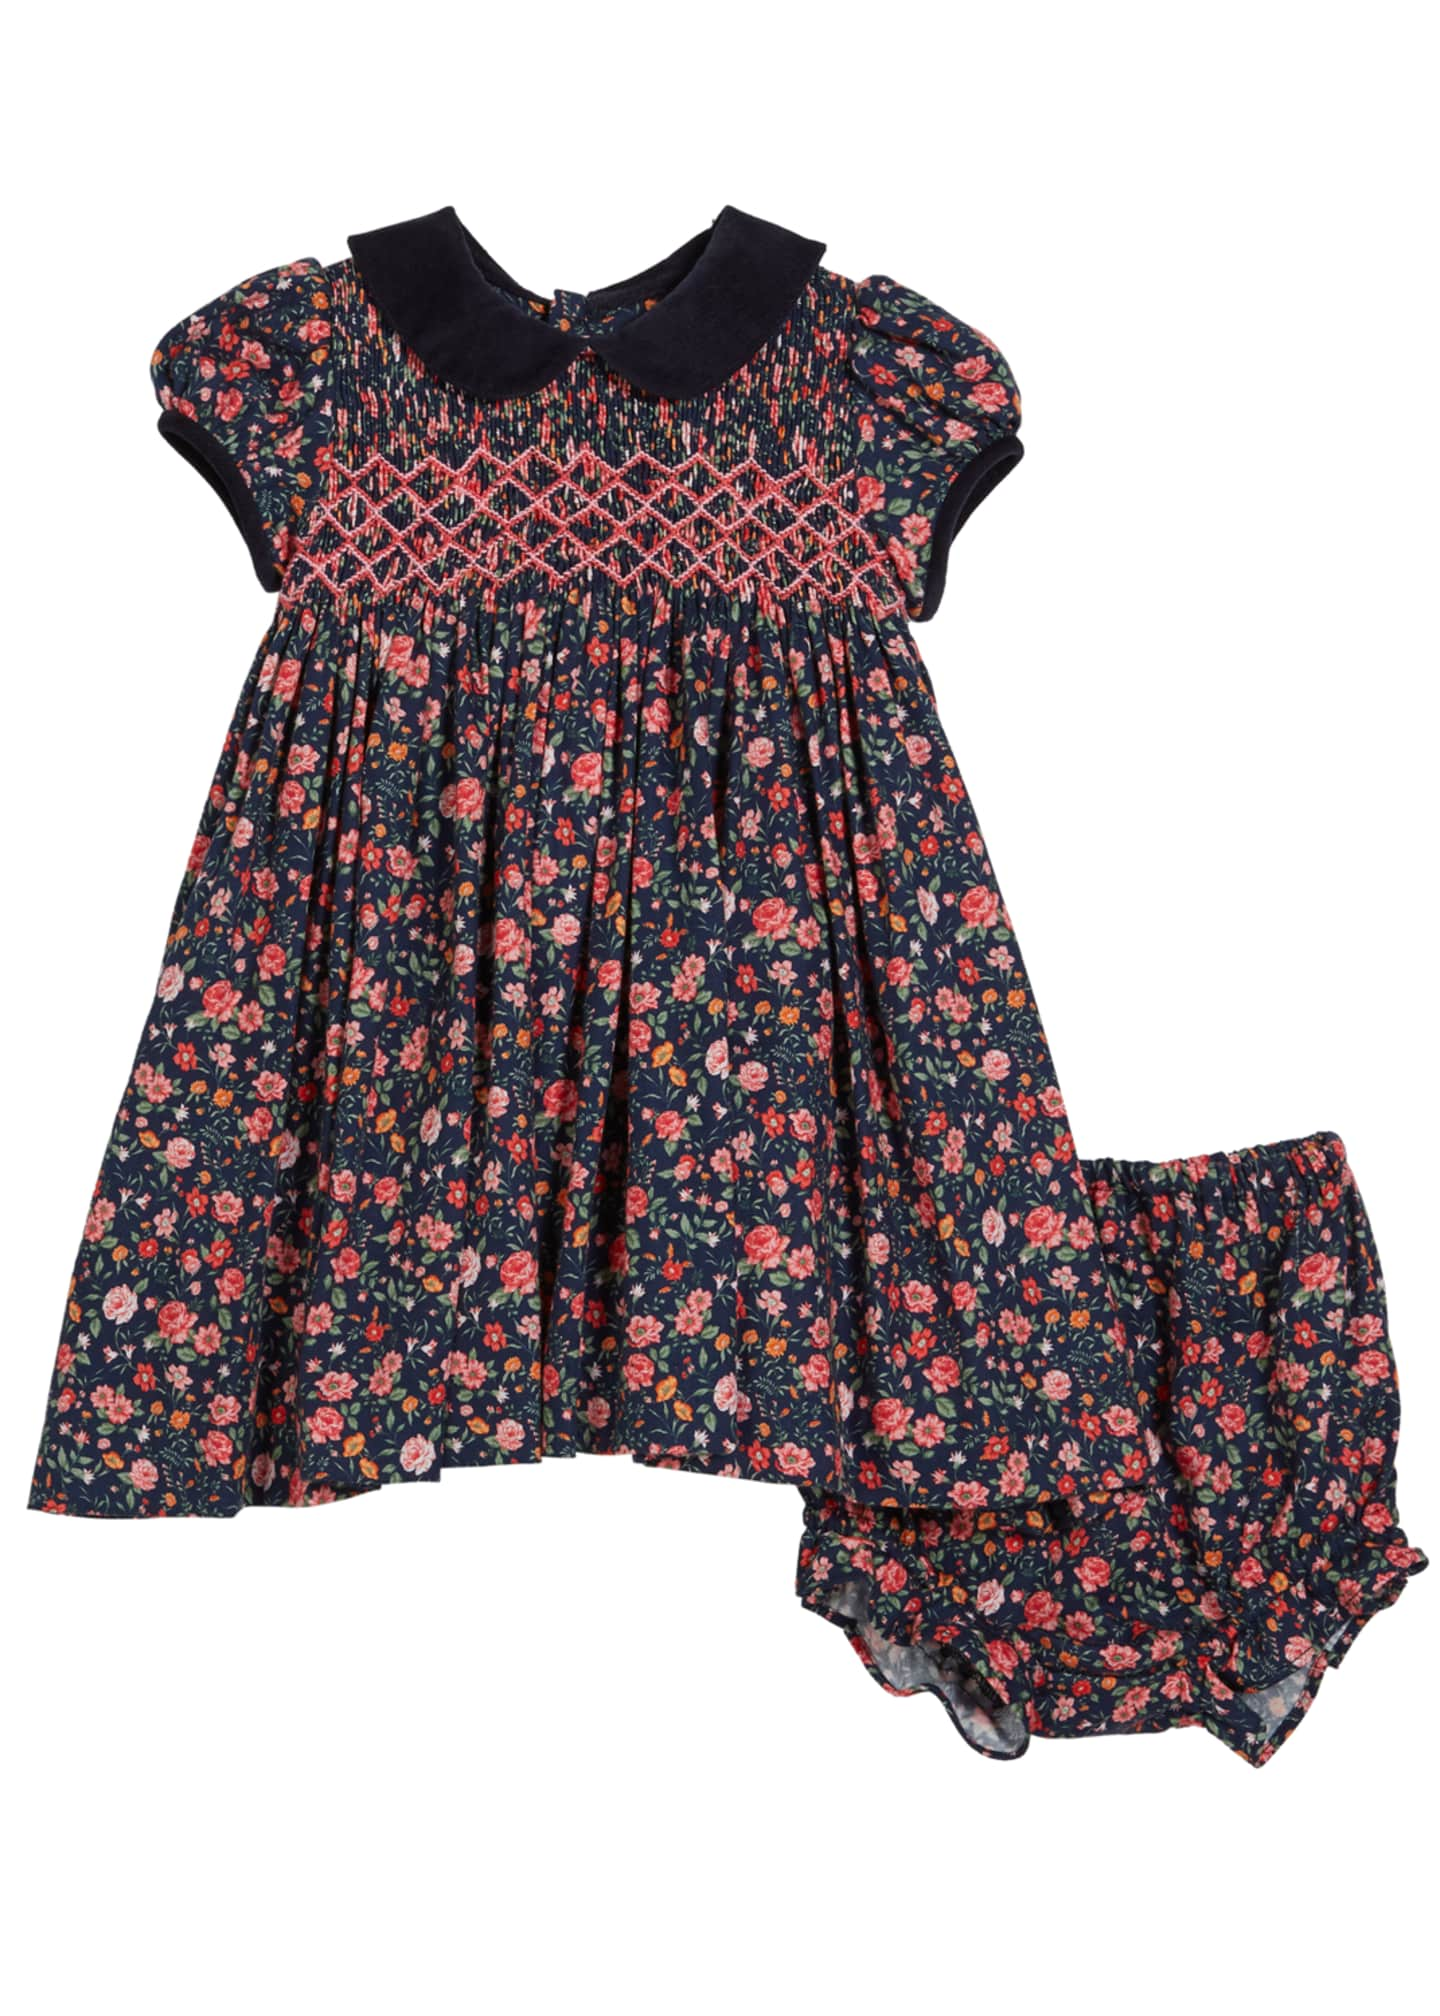 Luli & Me Floral Smocked Collared Dress w/